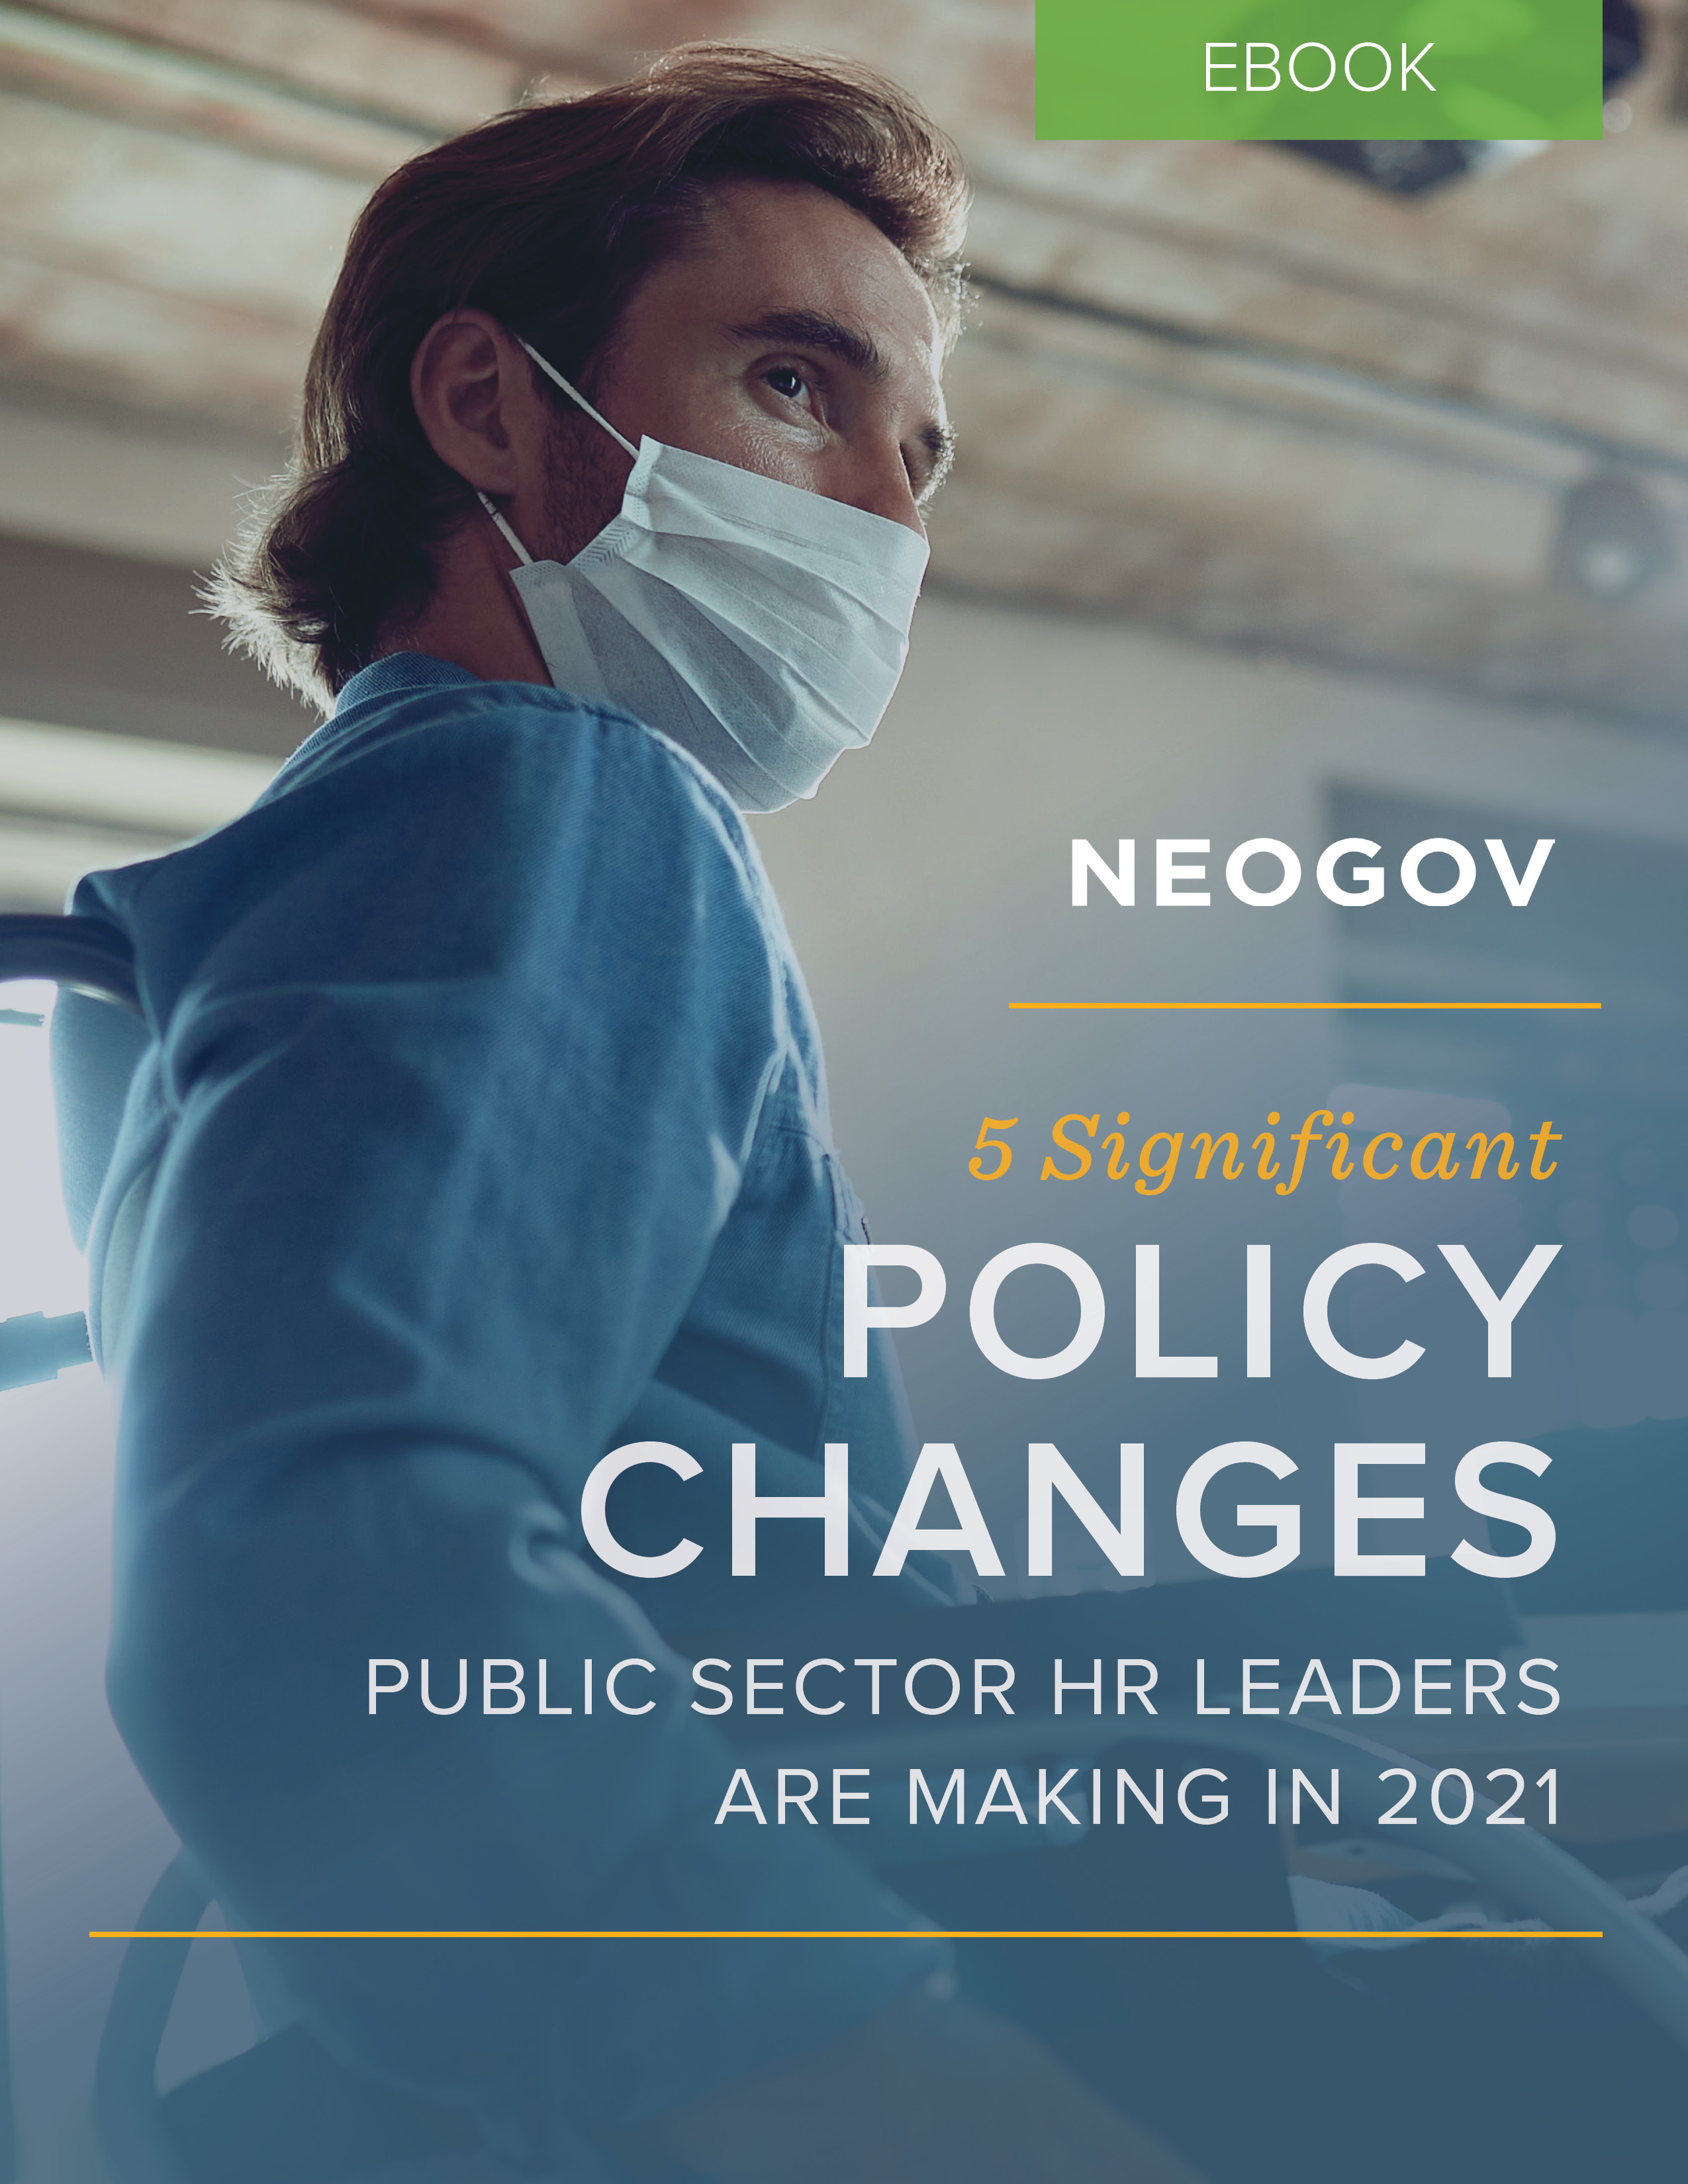 NEOED 5 Policy Changes Public Sector HR Leaders are Making in 2021